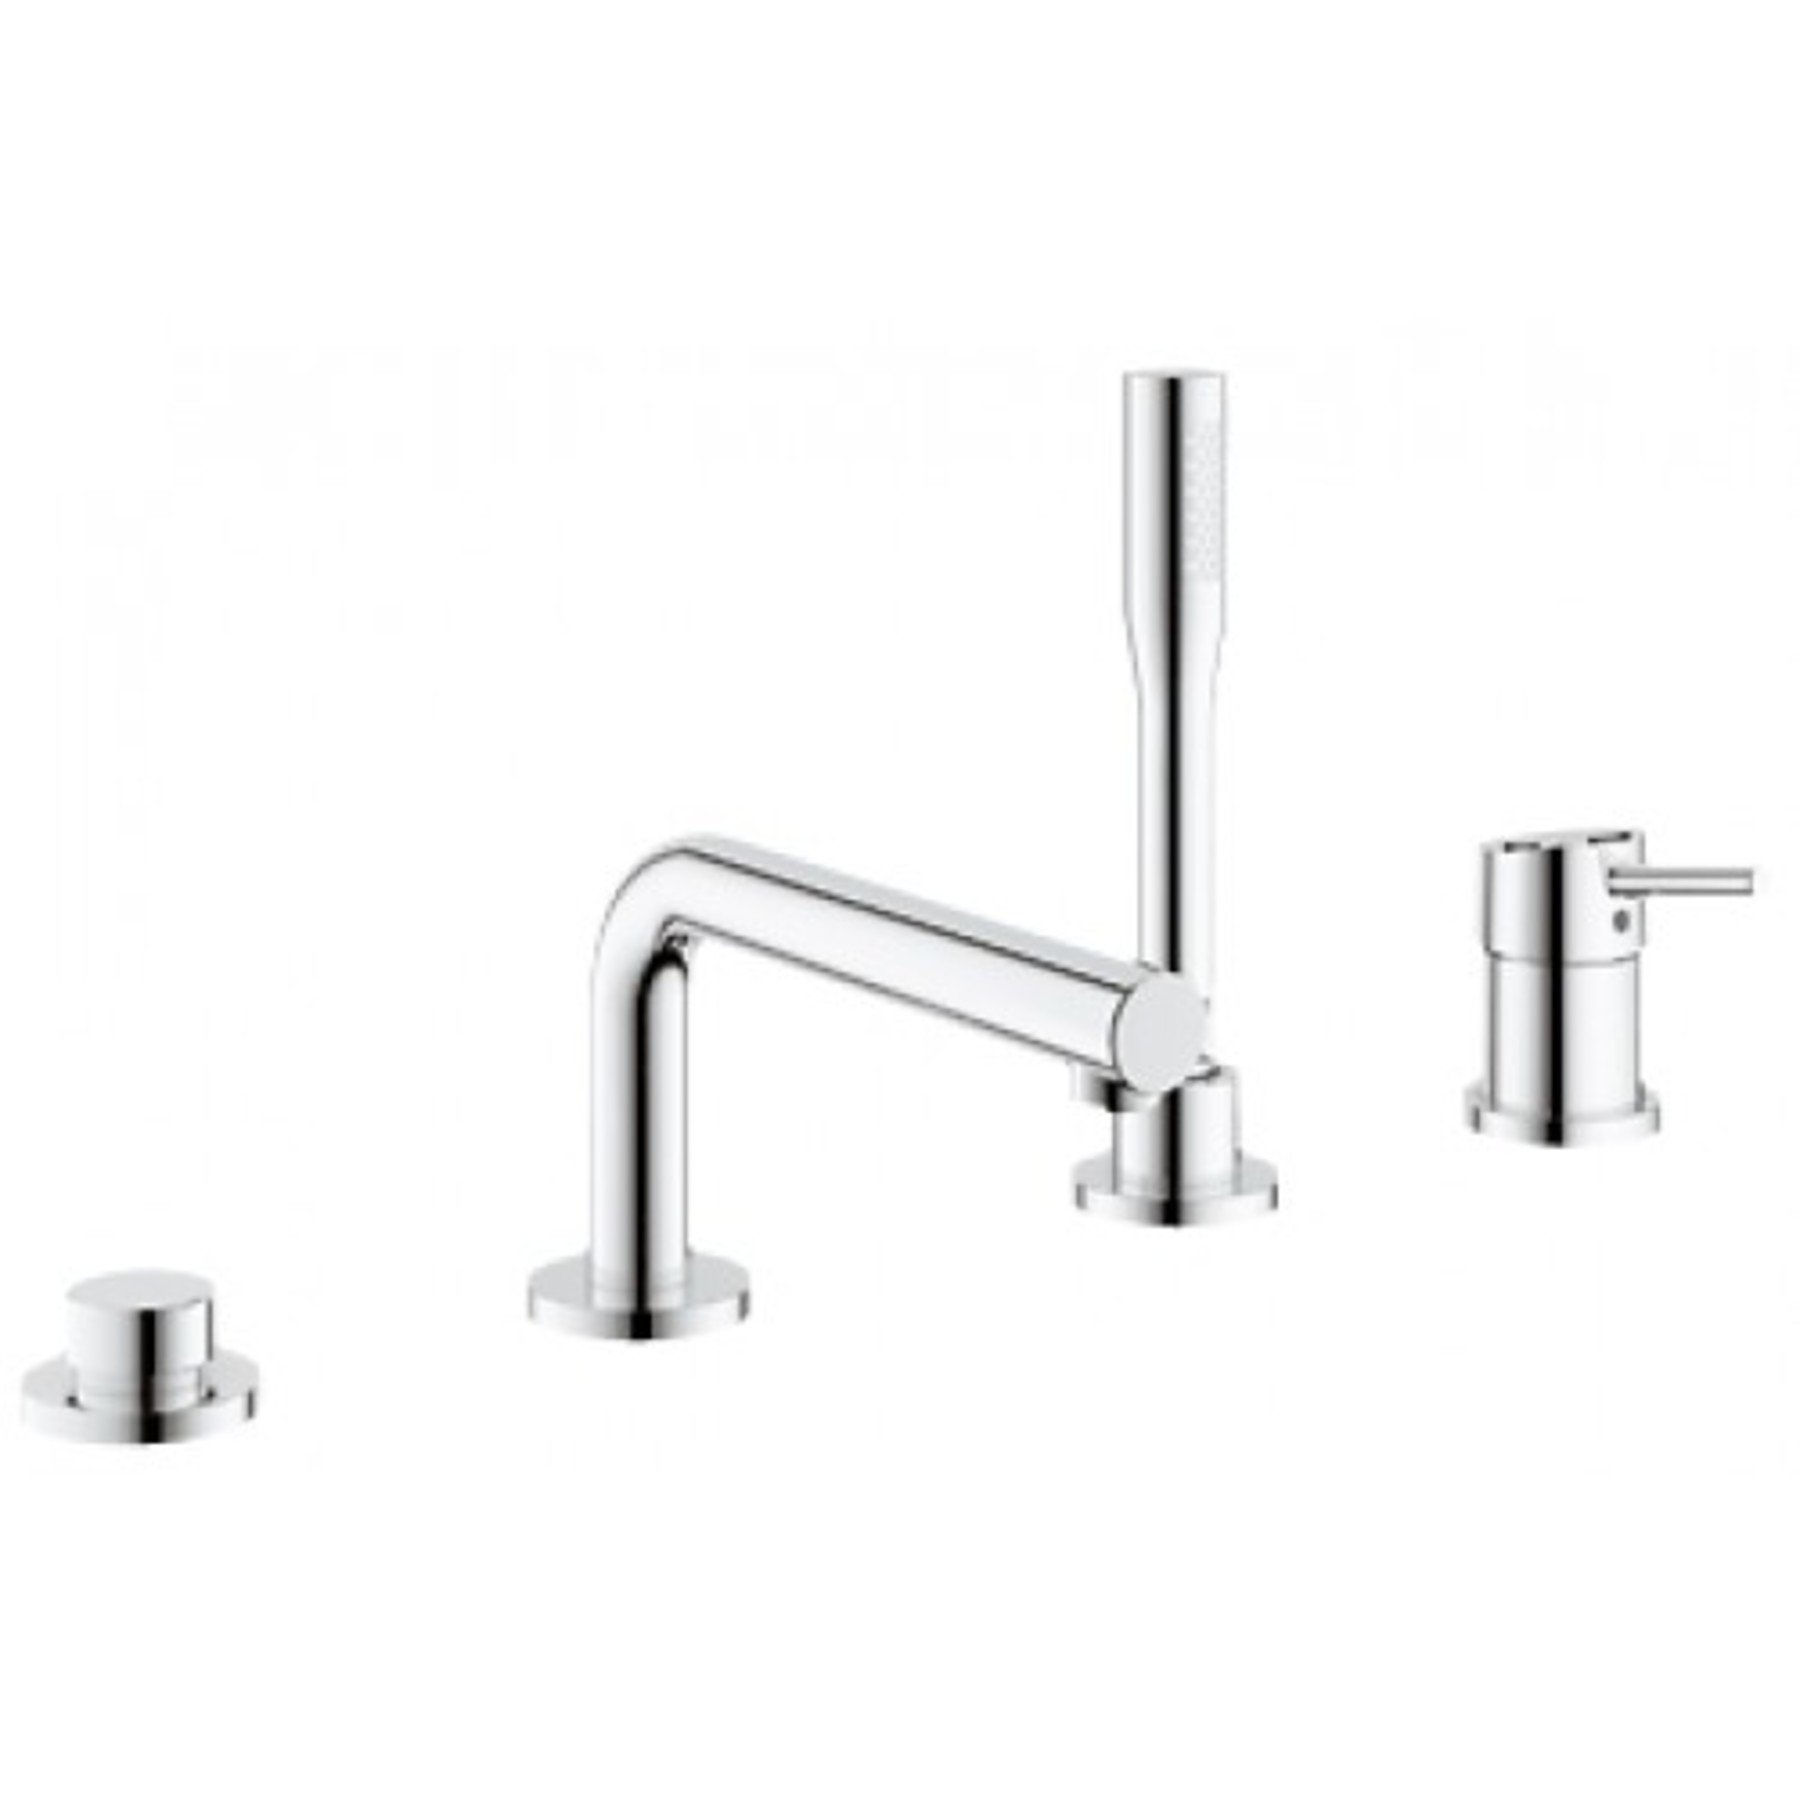 Grohe Concetto 4 gats badrandkraan chroom